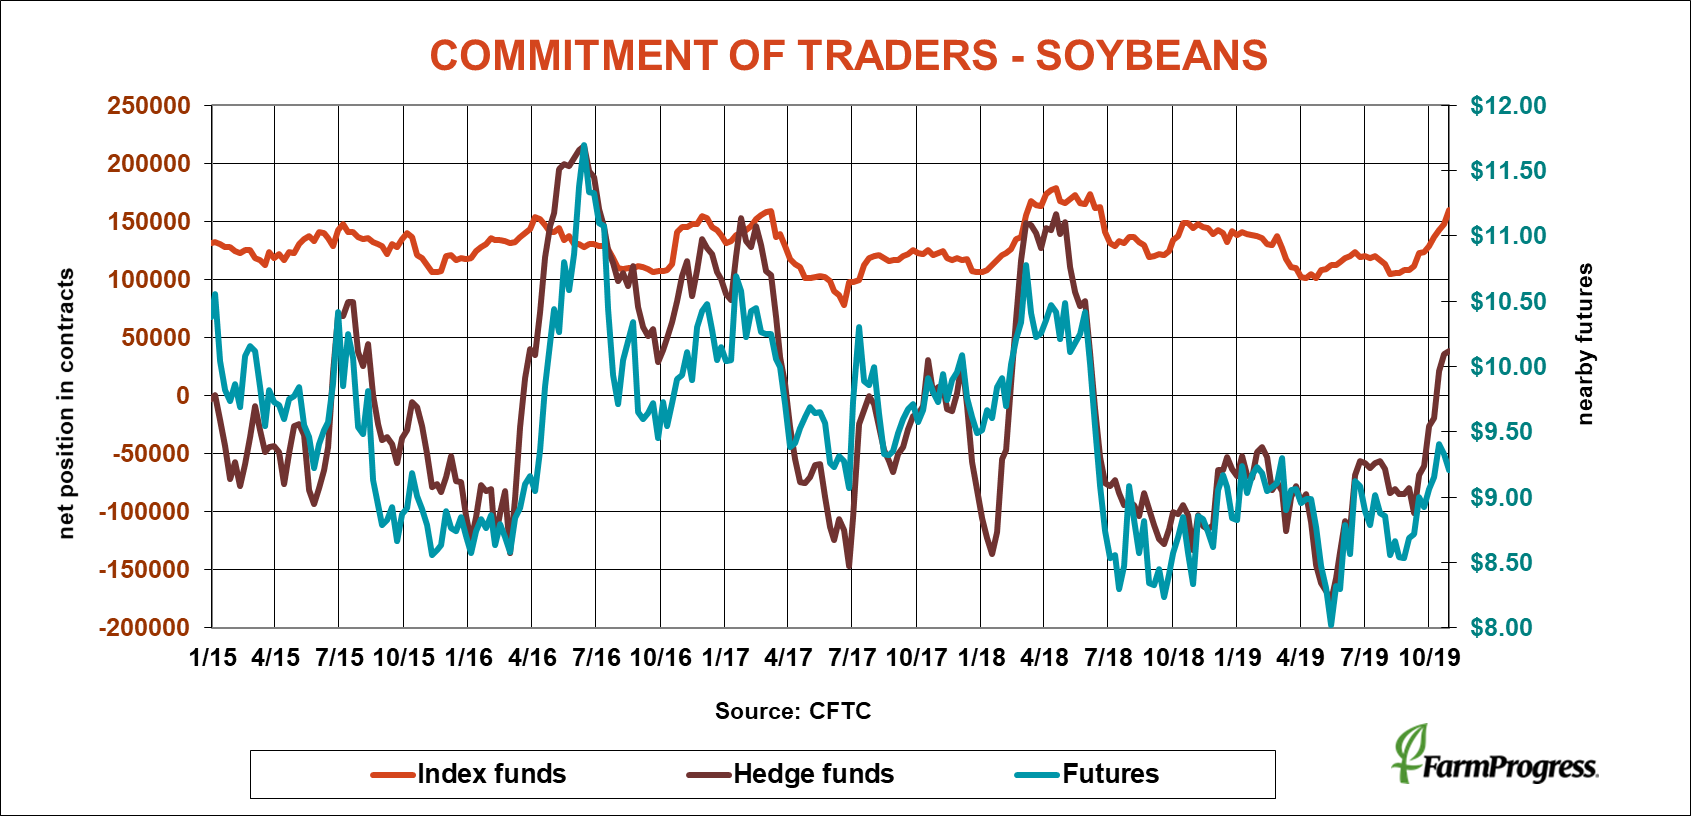 commitment-of-traders-soybeans-cftc-110119.png